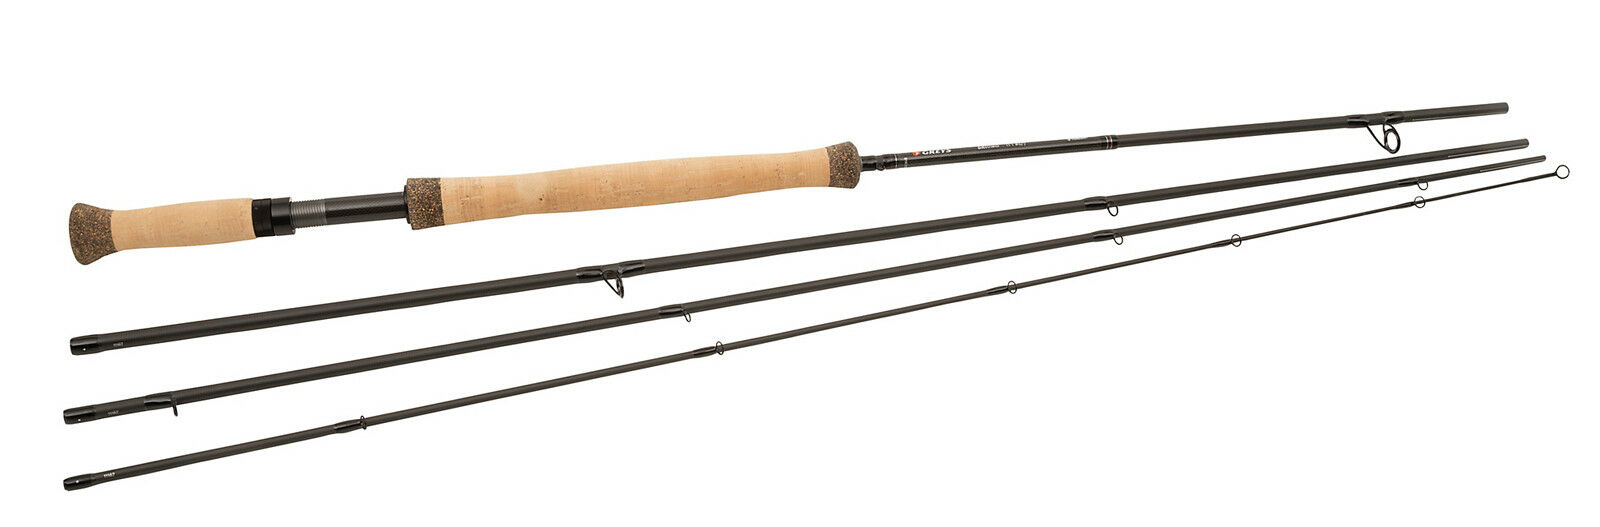 Greys GR60 Switch 4 Piece Salmon or Trout Fly Fishing  Rod + Case - All Sizes  are doing discount activities